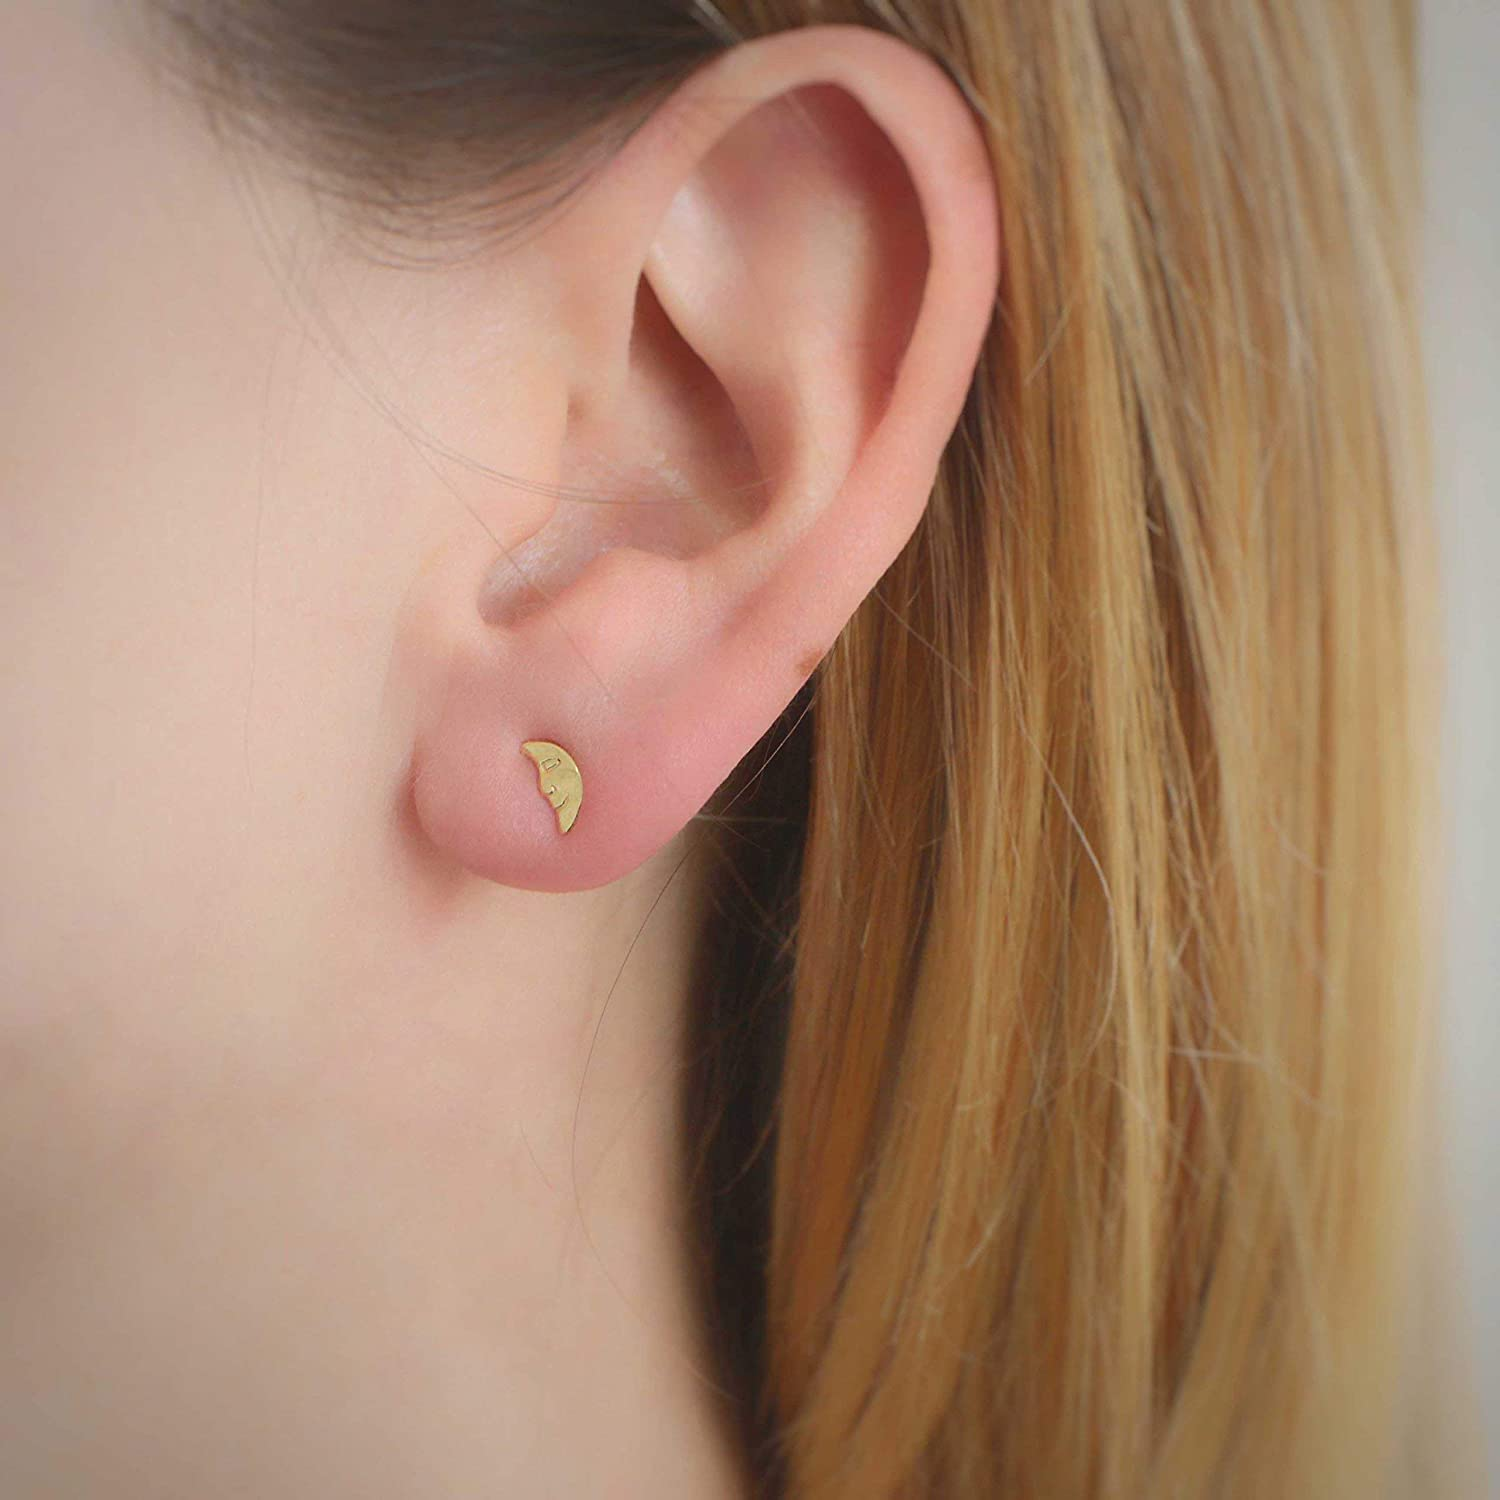 Details about  /Solid Metal 14K Rose Gold Plated Moon Shape Tiny Stud Earrings Gift For Her